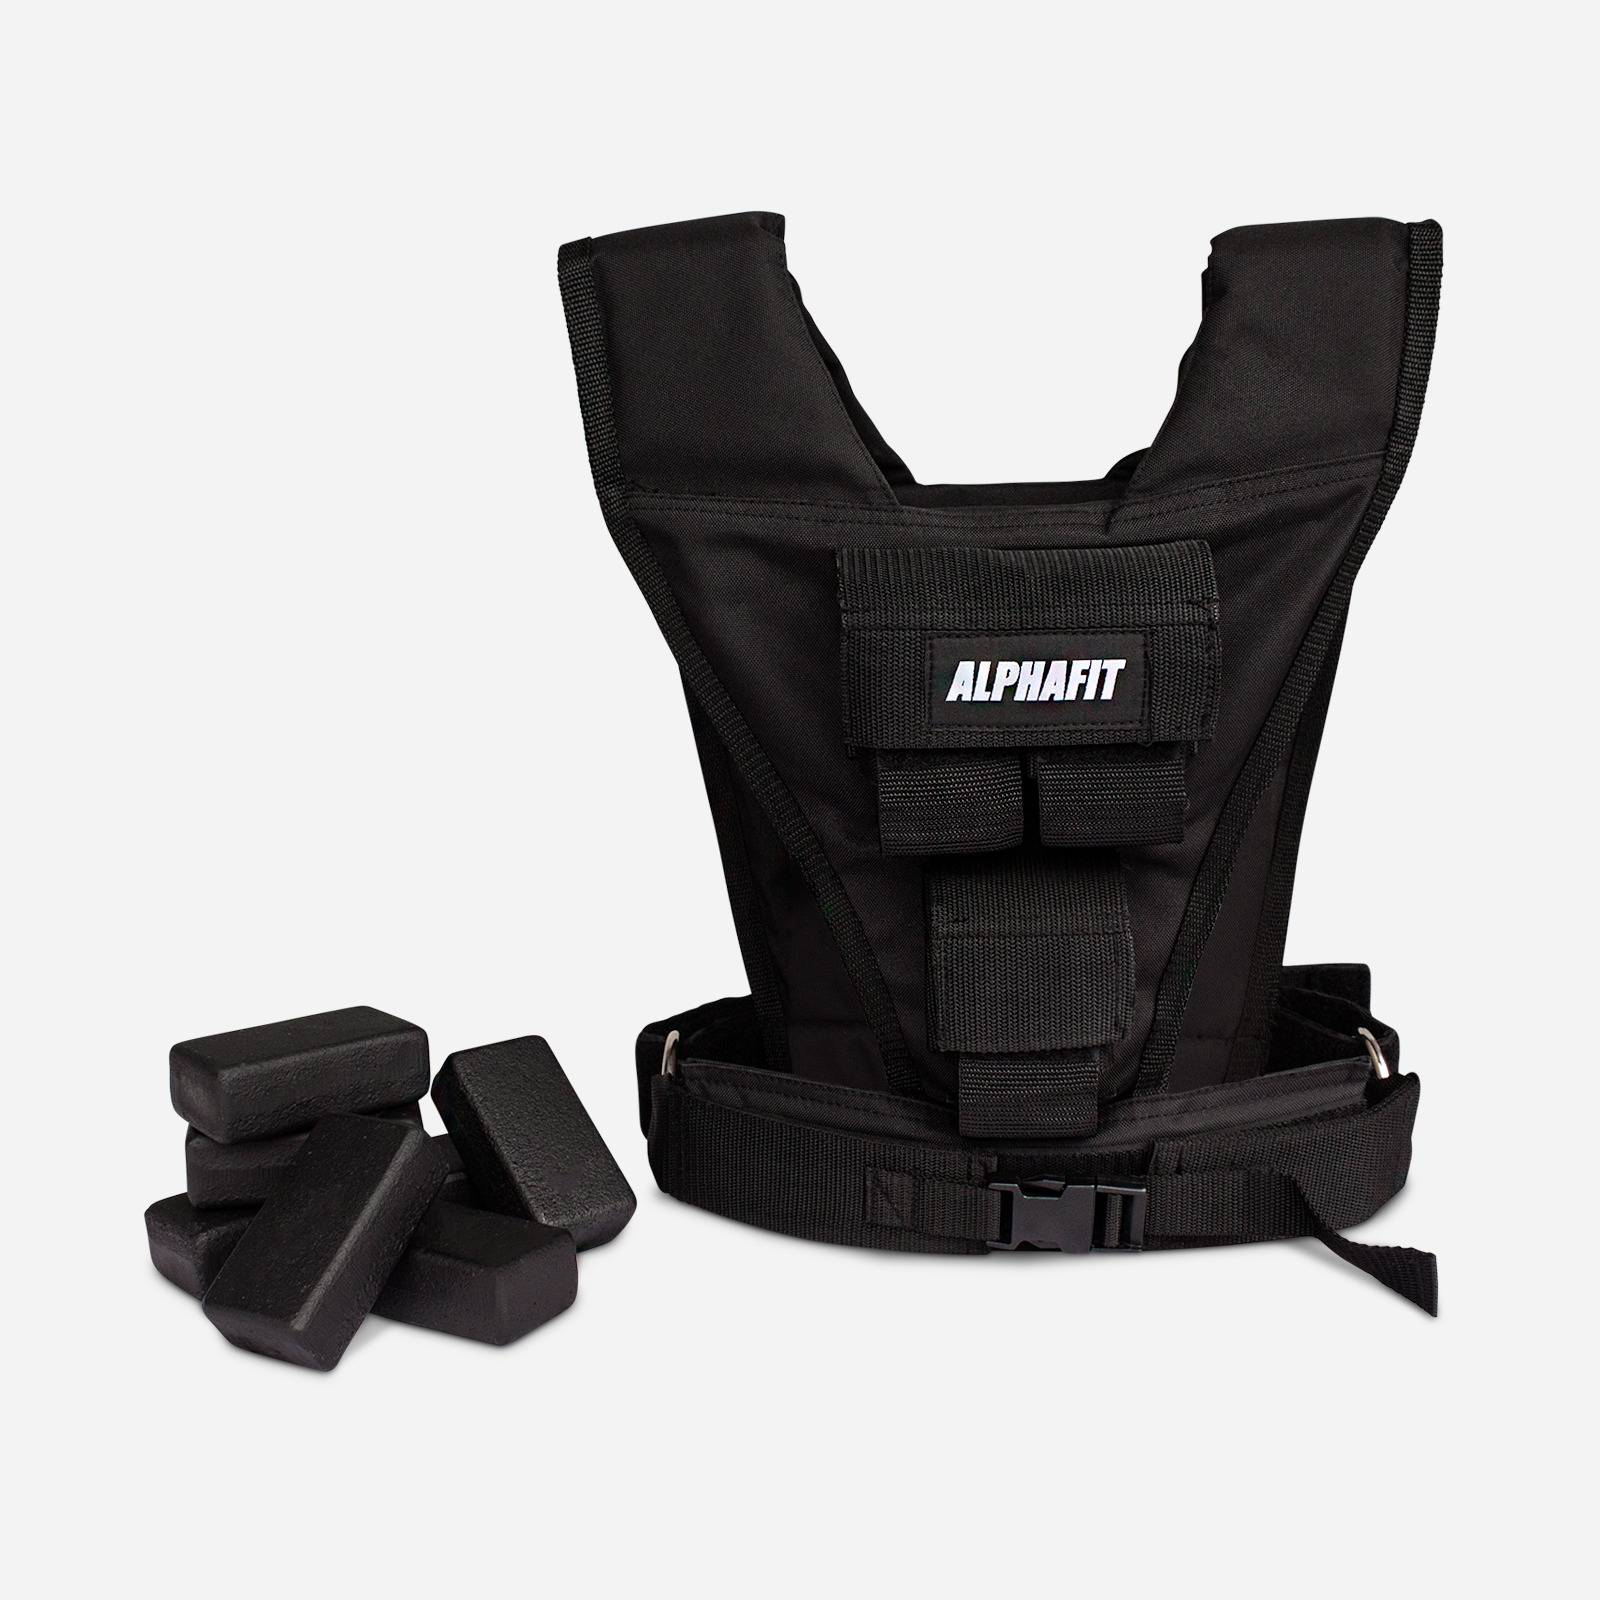 10kg Adjustable Weight Vest image